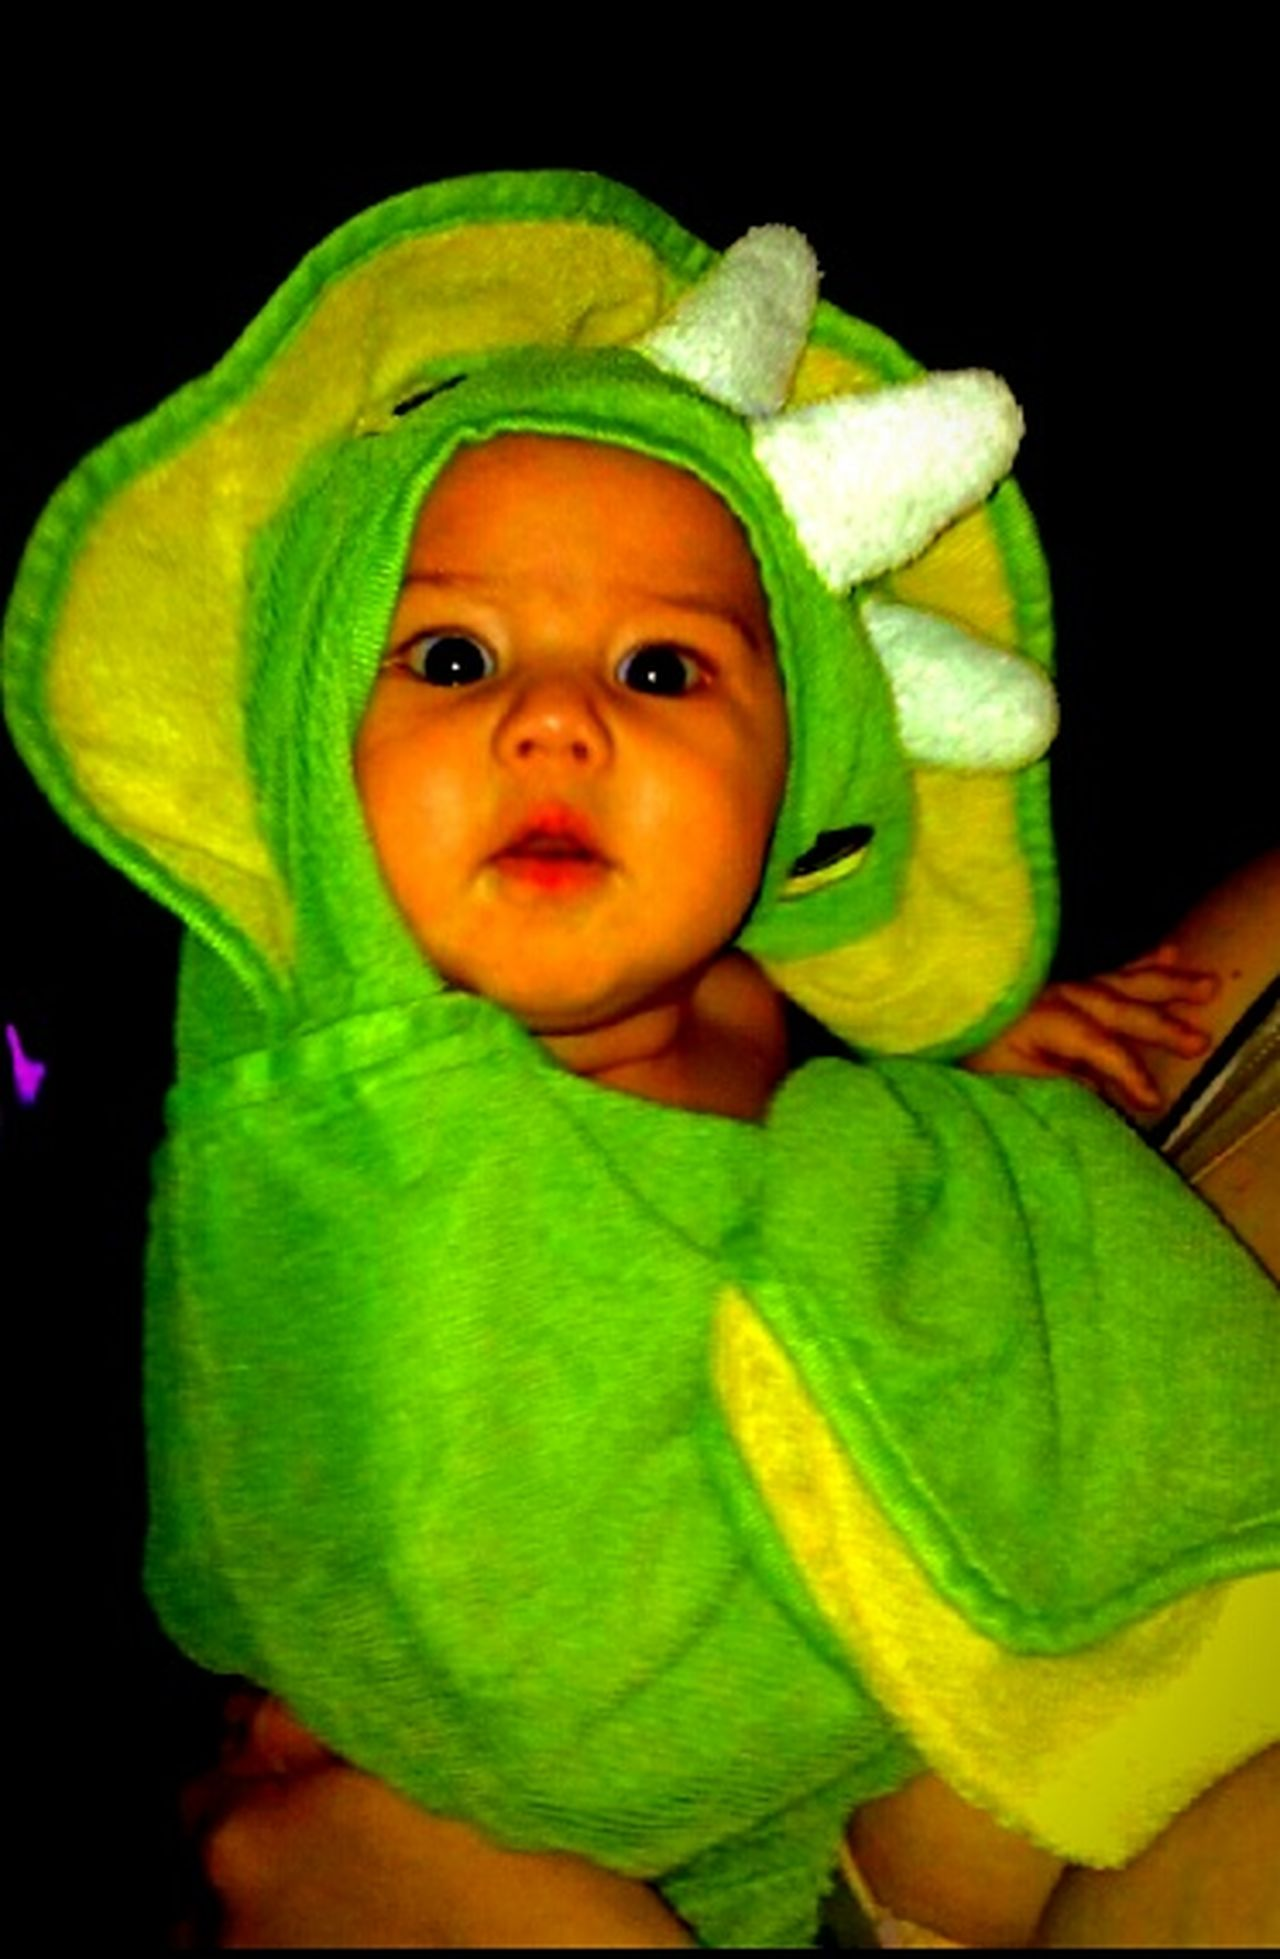 Lola Nia Bathed Towel Animal All Cleaned Up  Baby Girl Cuddle Time Dinosaurs Babies Only Cute Innocence Green Color Looking At Camera Portrait Childhood Babyhood DinosaursAroundTheWorld Dinosaur Black Background One Person People Spring Evening Original Experiences Just For A Minute Getty Images Eyeem Market Out Of The Box Live For The Story